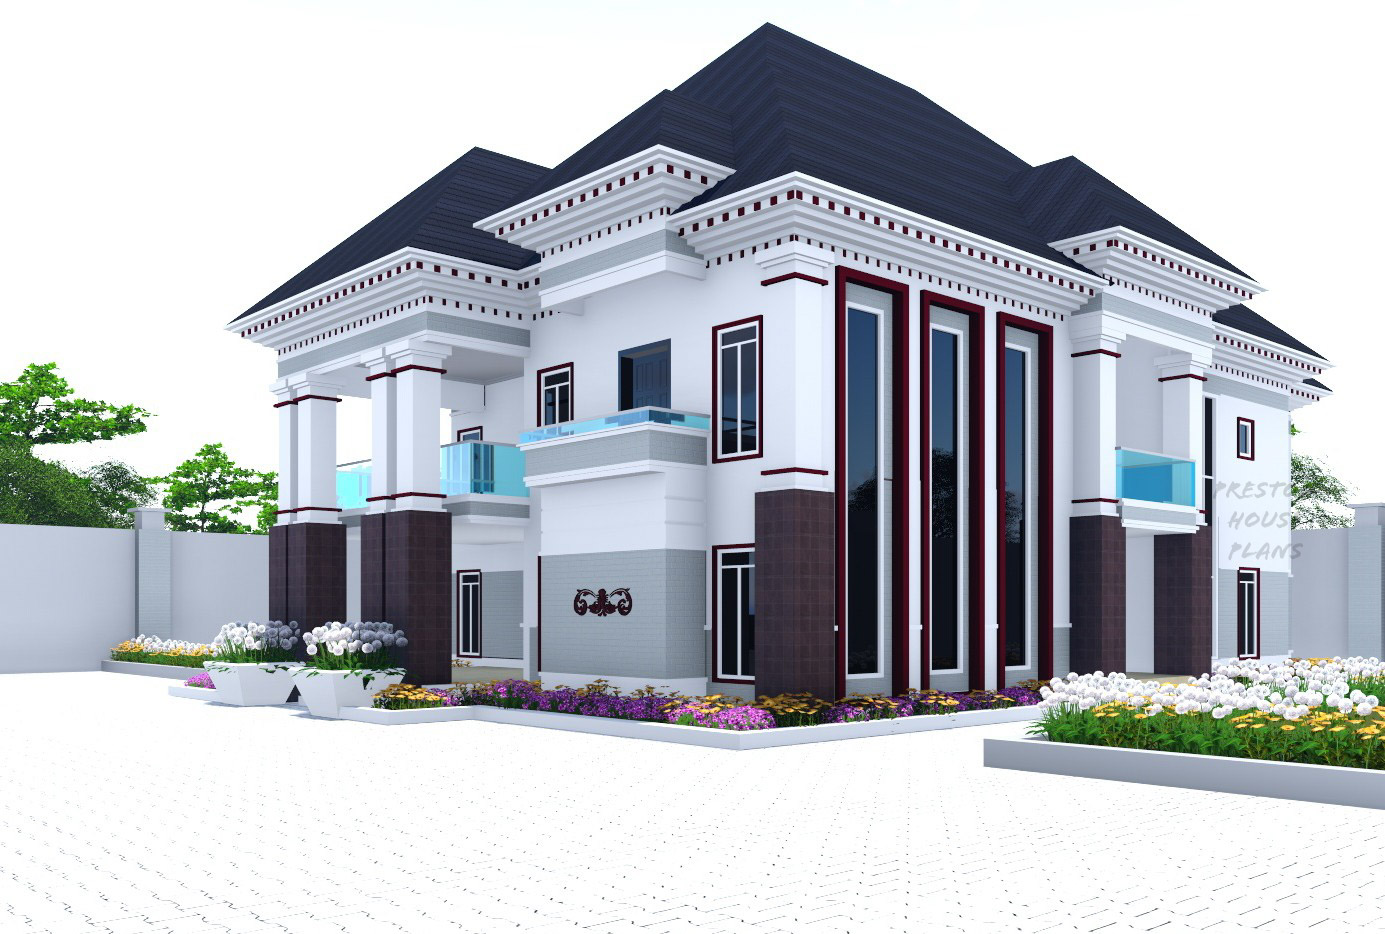 Brown and white five bedroom duplex